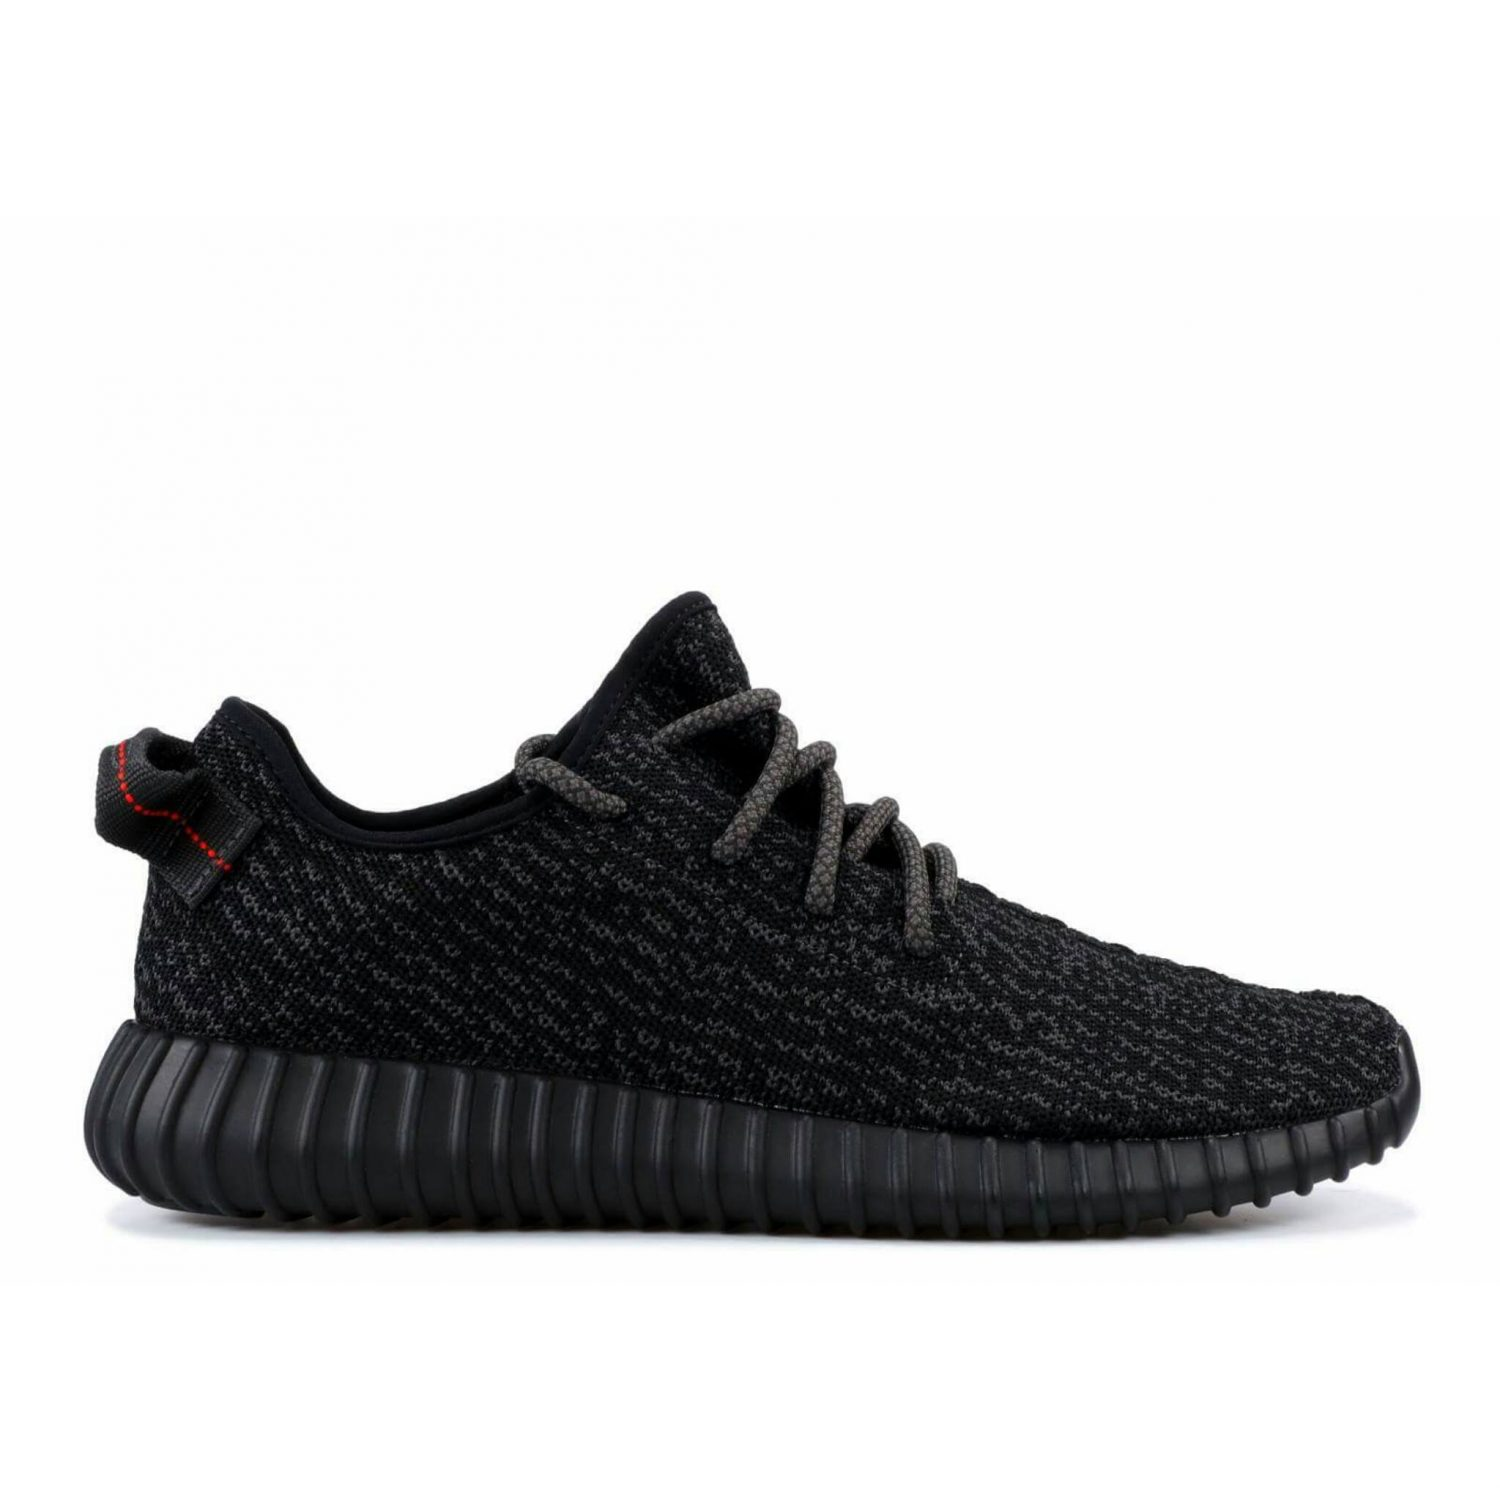 sports shoes 190d5 541c3 Adidas Yeezy 350 V1 Pirate Black For Men